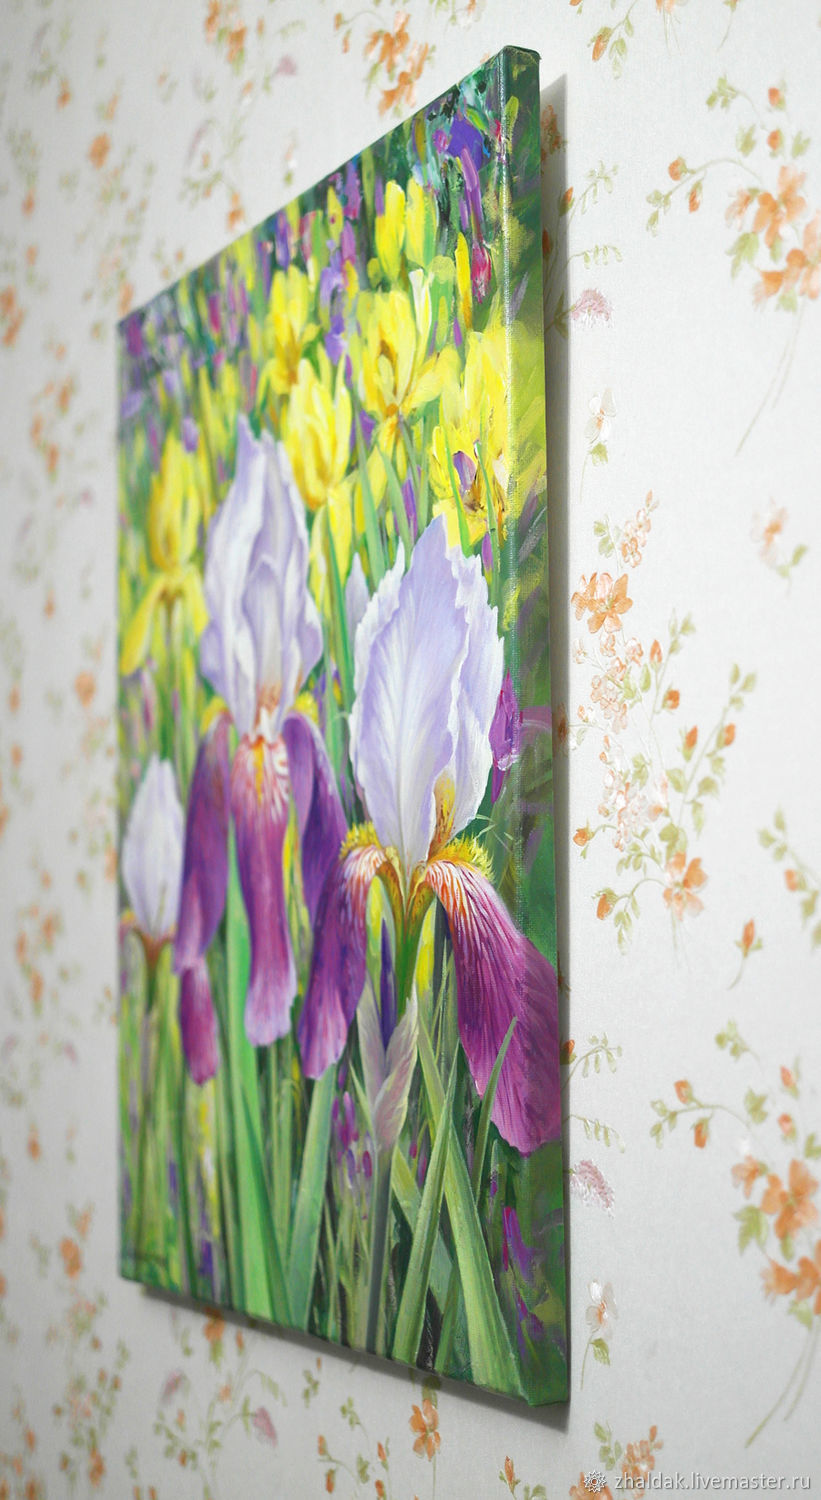 The painting irises shop online on livemaster with shipping online shopping flower paintings handmade order the painting irises zhaldak eduard paintings izmirmasajfo